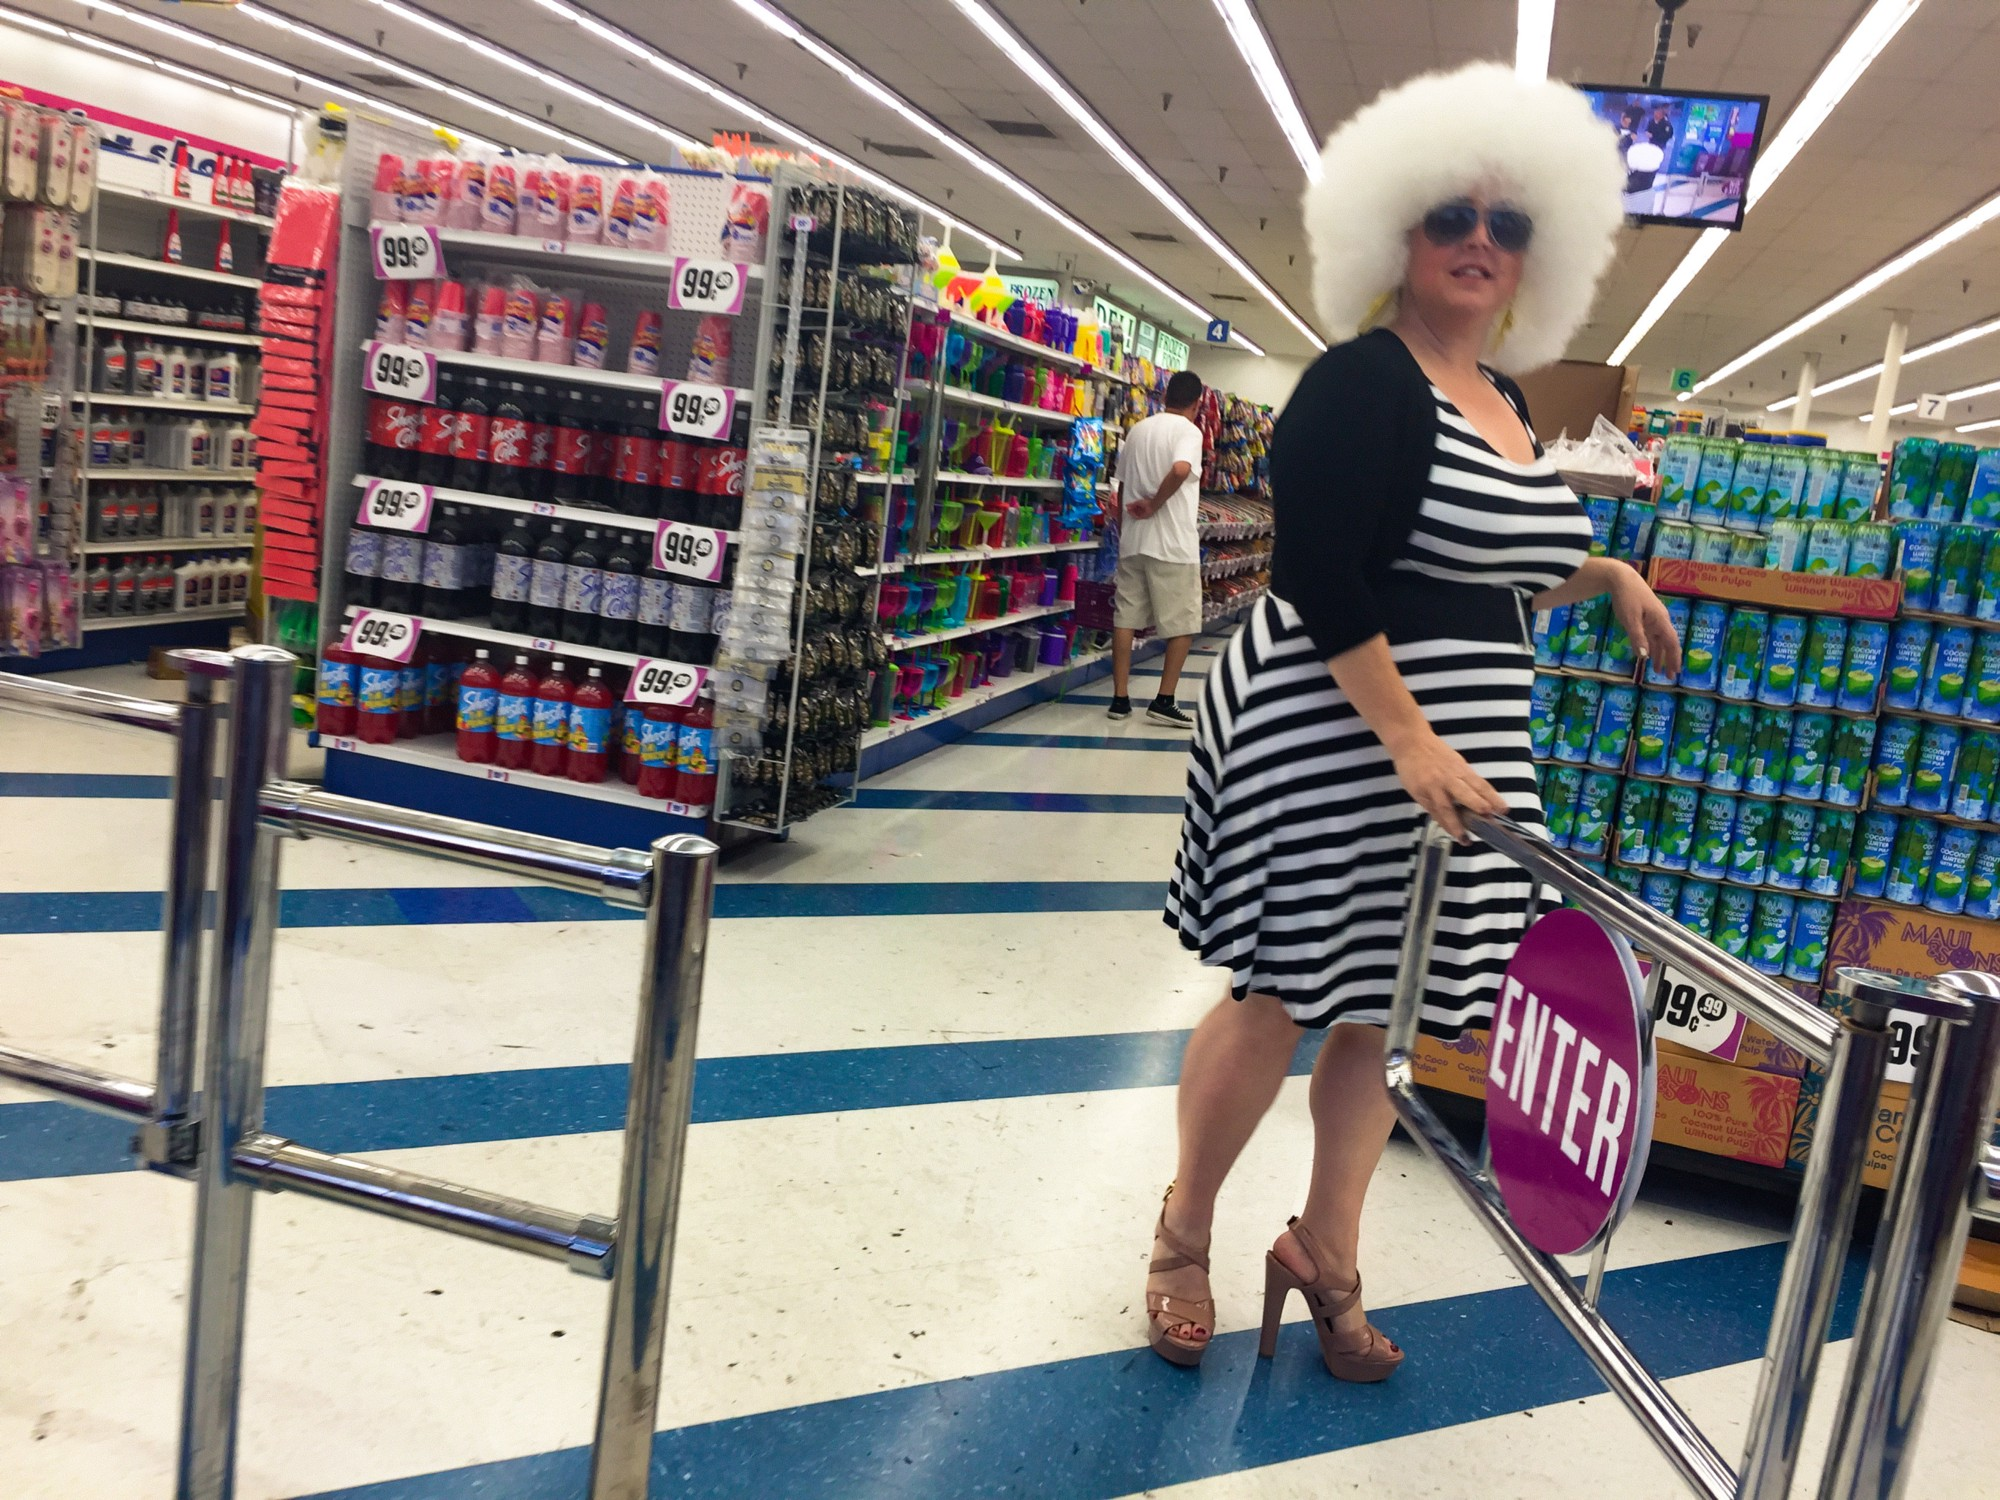 PHOTOGRAPHY LA Story Mary Jo And The 99 Cent Store